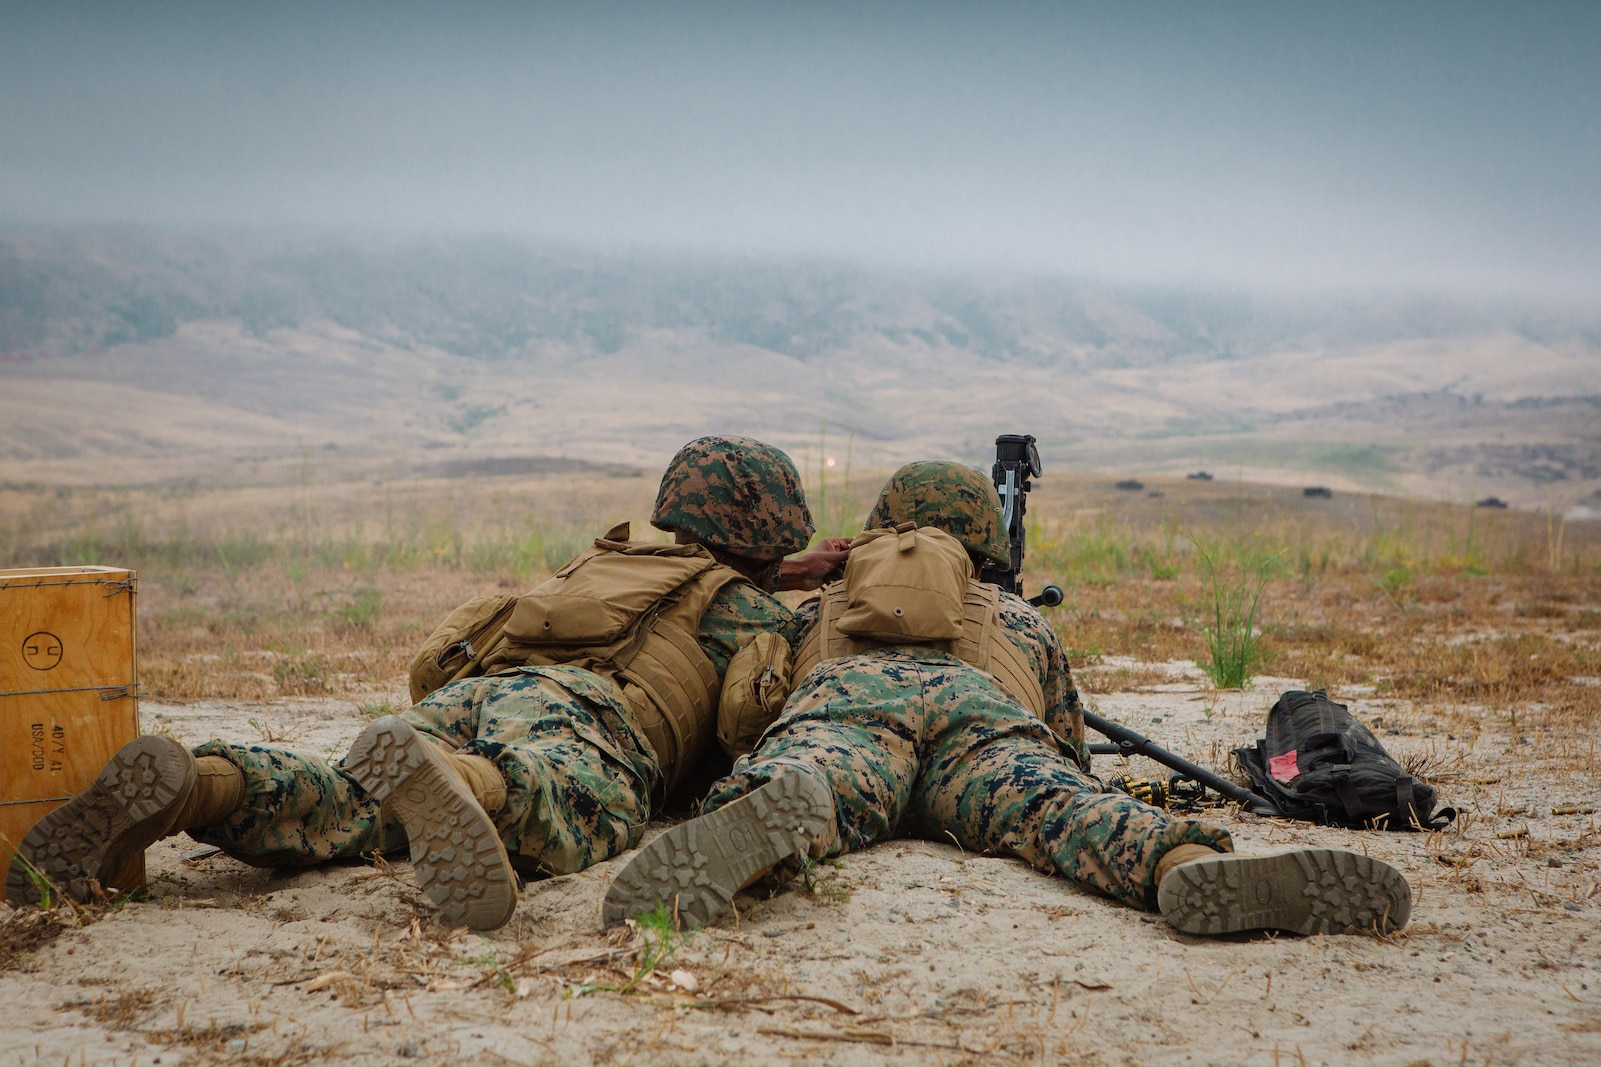 The Marines and Sailors participated in a live fire machine gun range to familiarize themselves with the weapon system as part of the Combat Skills Training School course.